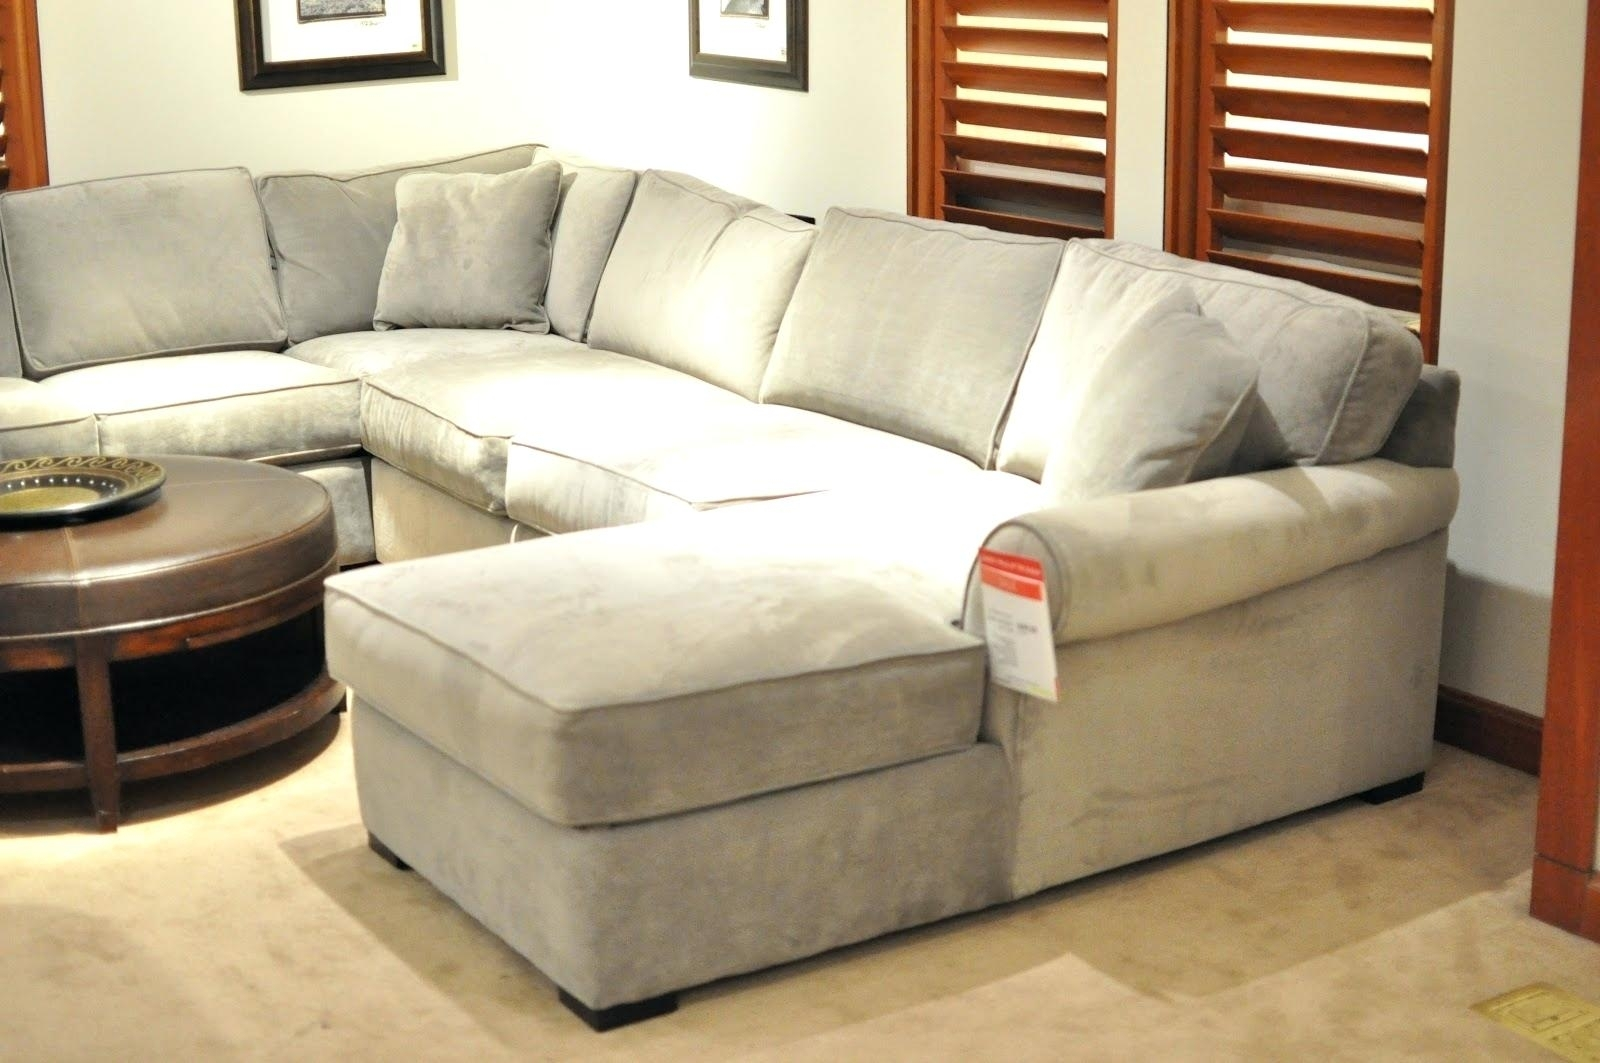 Pottery Barn Sectional Sofas Sofa Covers Turner Leather Reviews Regarding Pottery Barn Sectional Sofas (View 8 of 10)